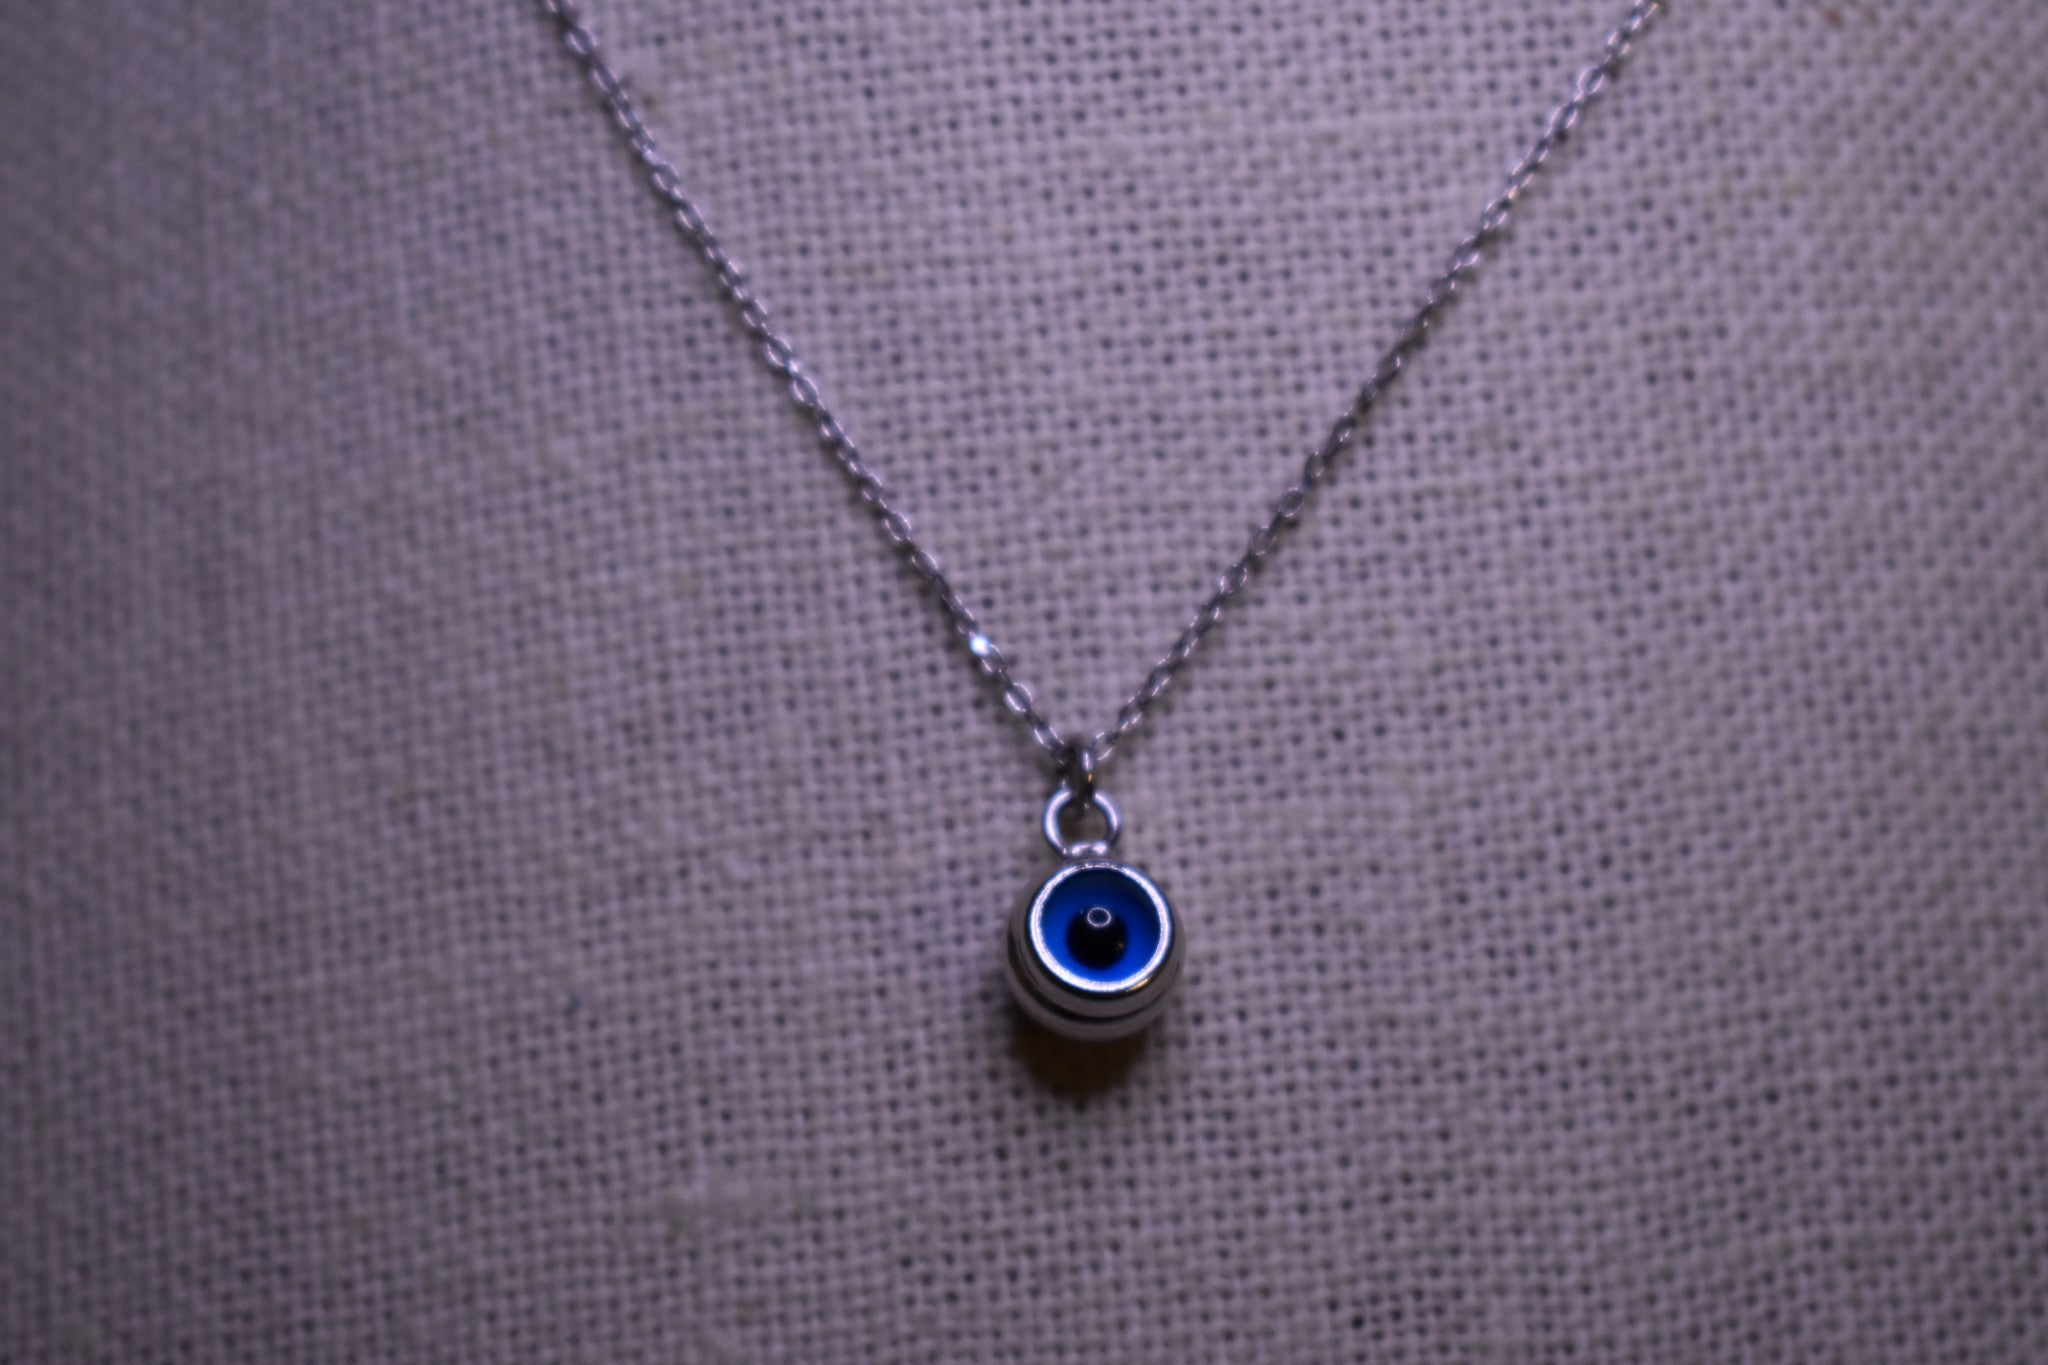 Handmade Small Glass Silver Evil Eye Necklace Evil Eye Pendant